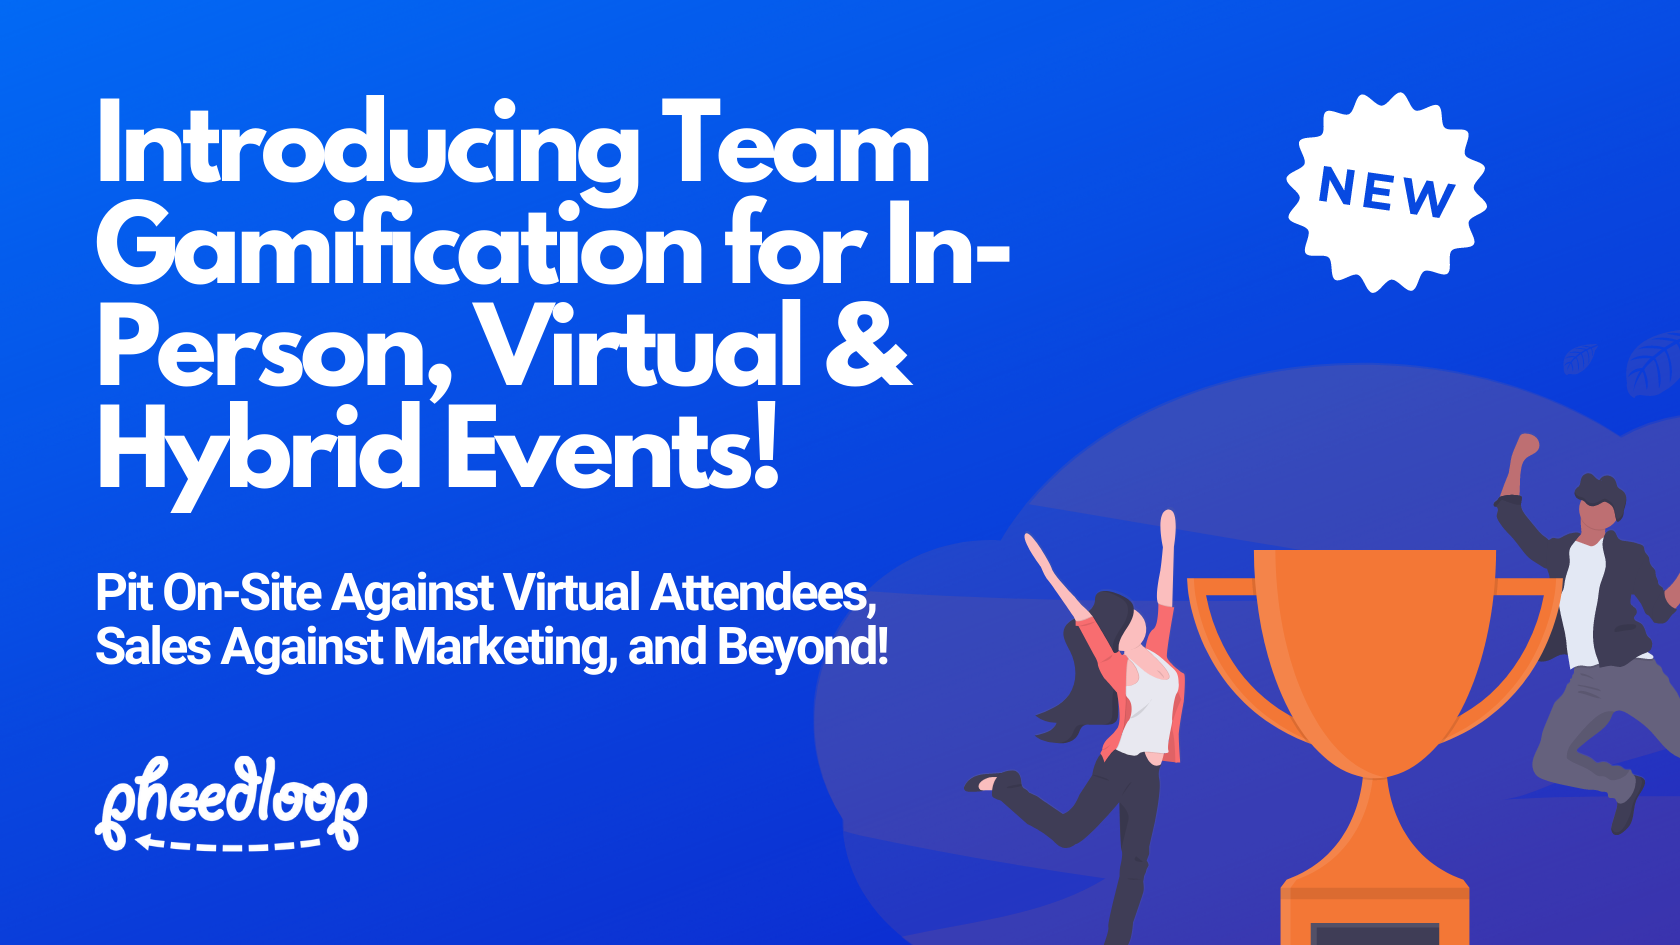 Introducing Team Gamification for Events! Pit On-Site Against Virtual Attendees, Sales Teams Against Marketing, and Beyond!